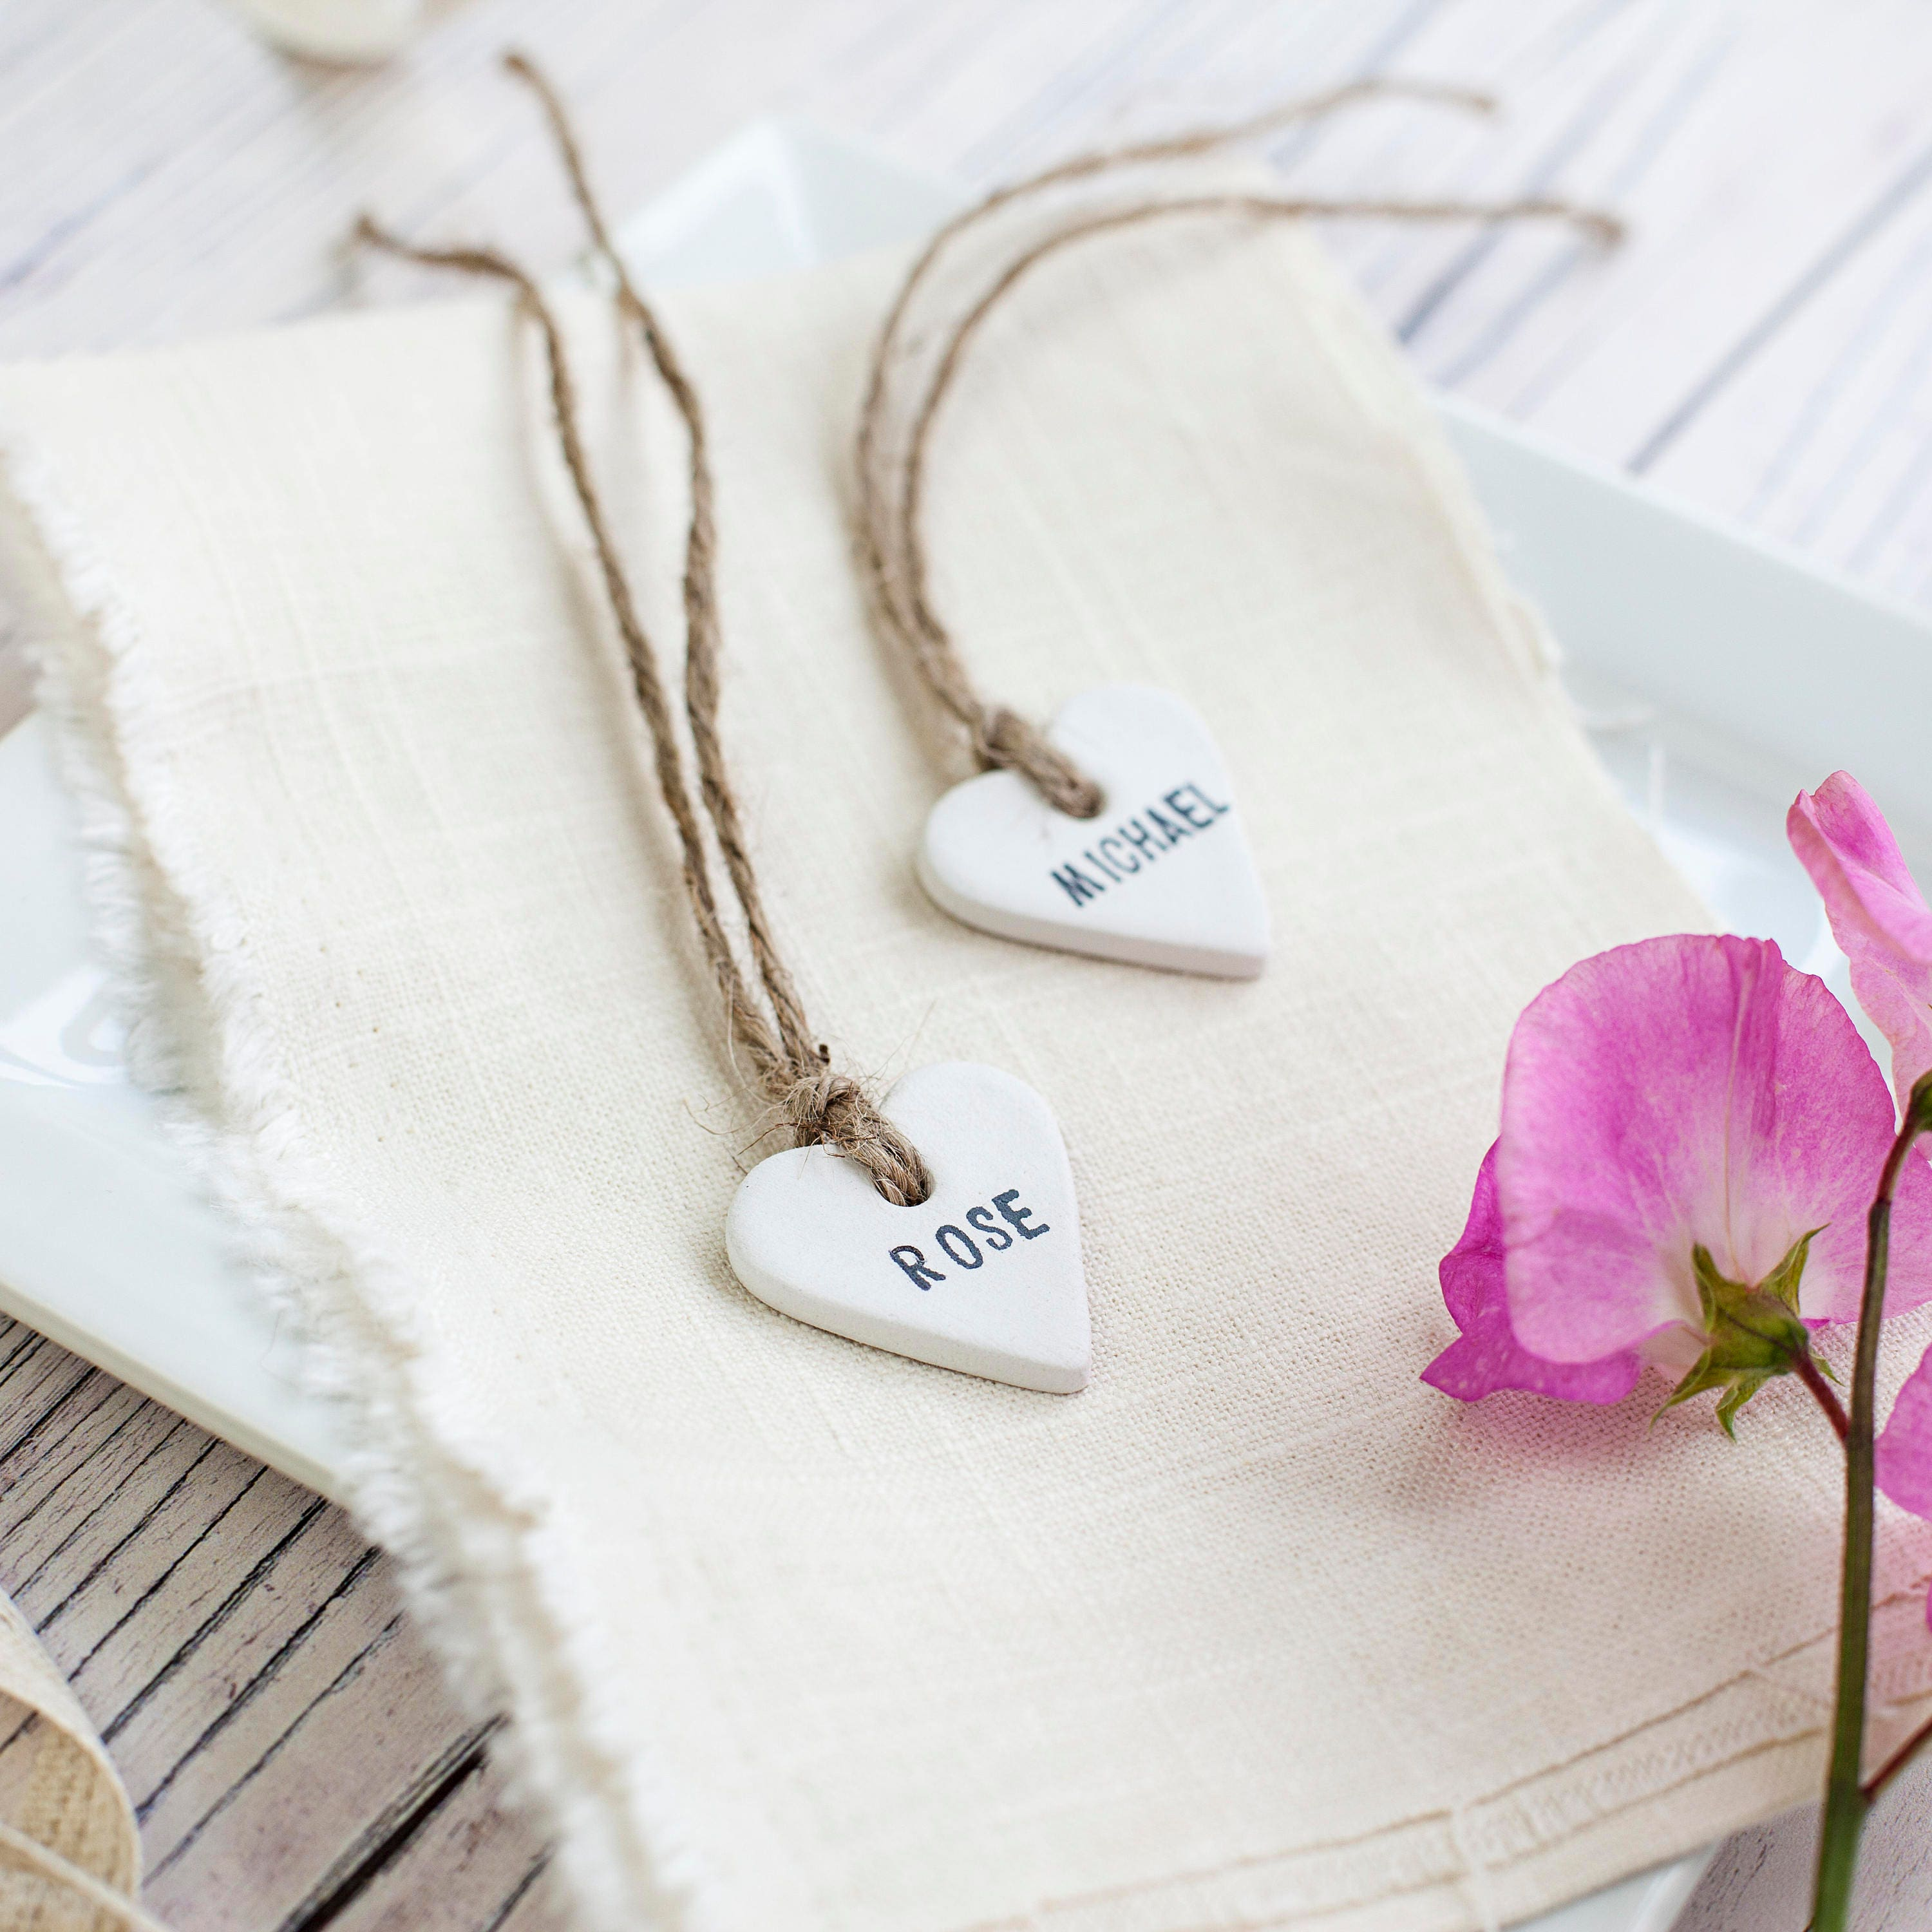 100 Personalised Clay Ceramic Heart Place, Favour/Favor Tags ...